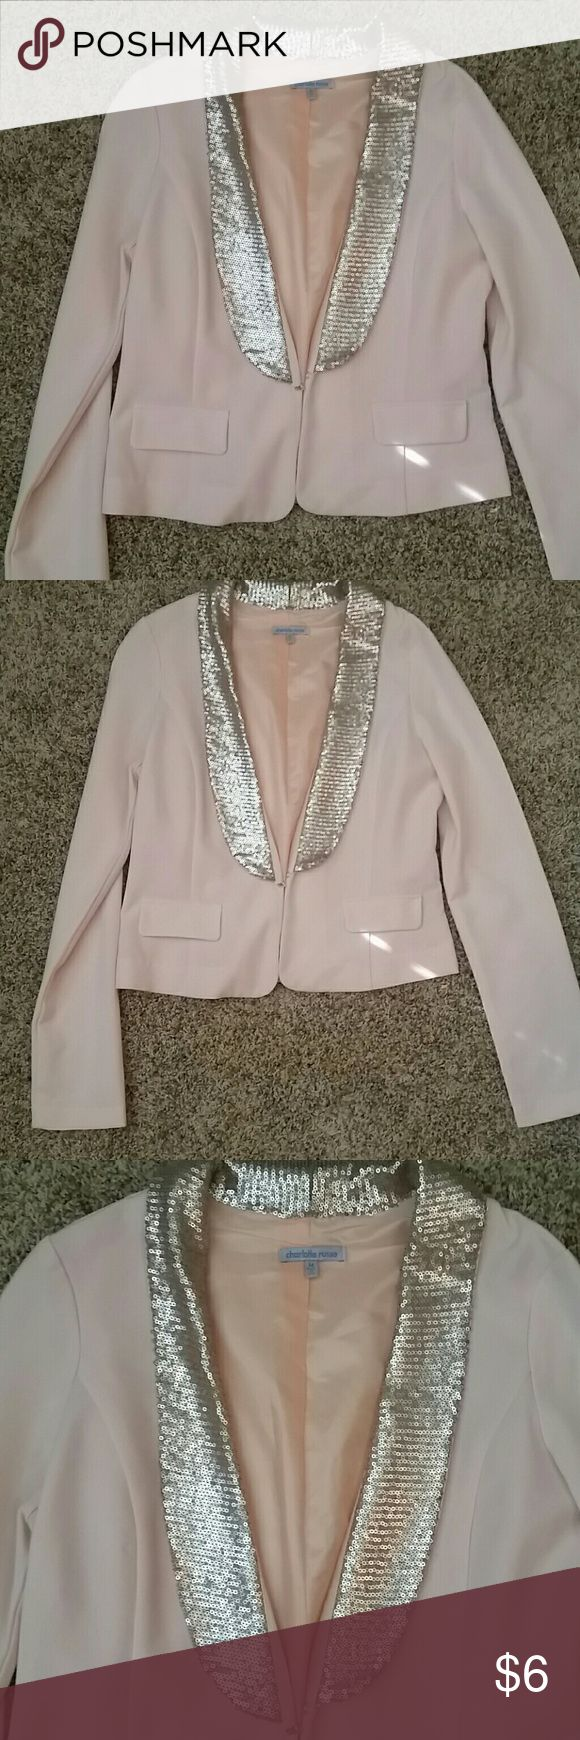 pastel pink blazer/ jacket with sequin neck lined Super cute light pink blazer from Charlotte Russe with sequin neck line and satin lining  Perfect condition Charlotte Russe Jackets & Coats Blazers